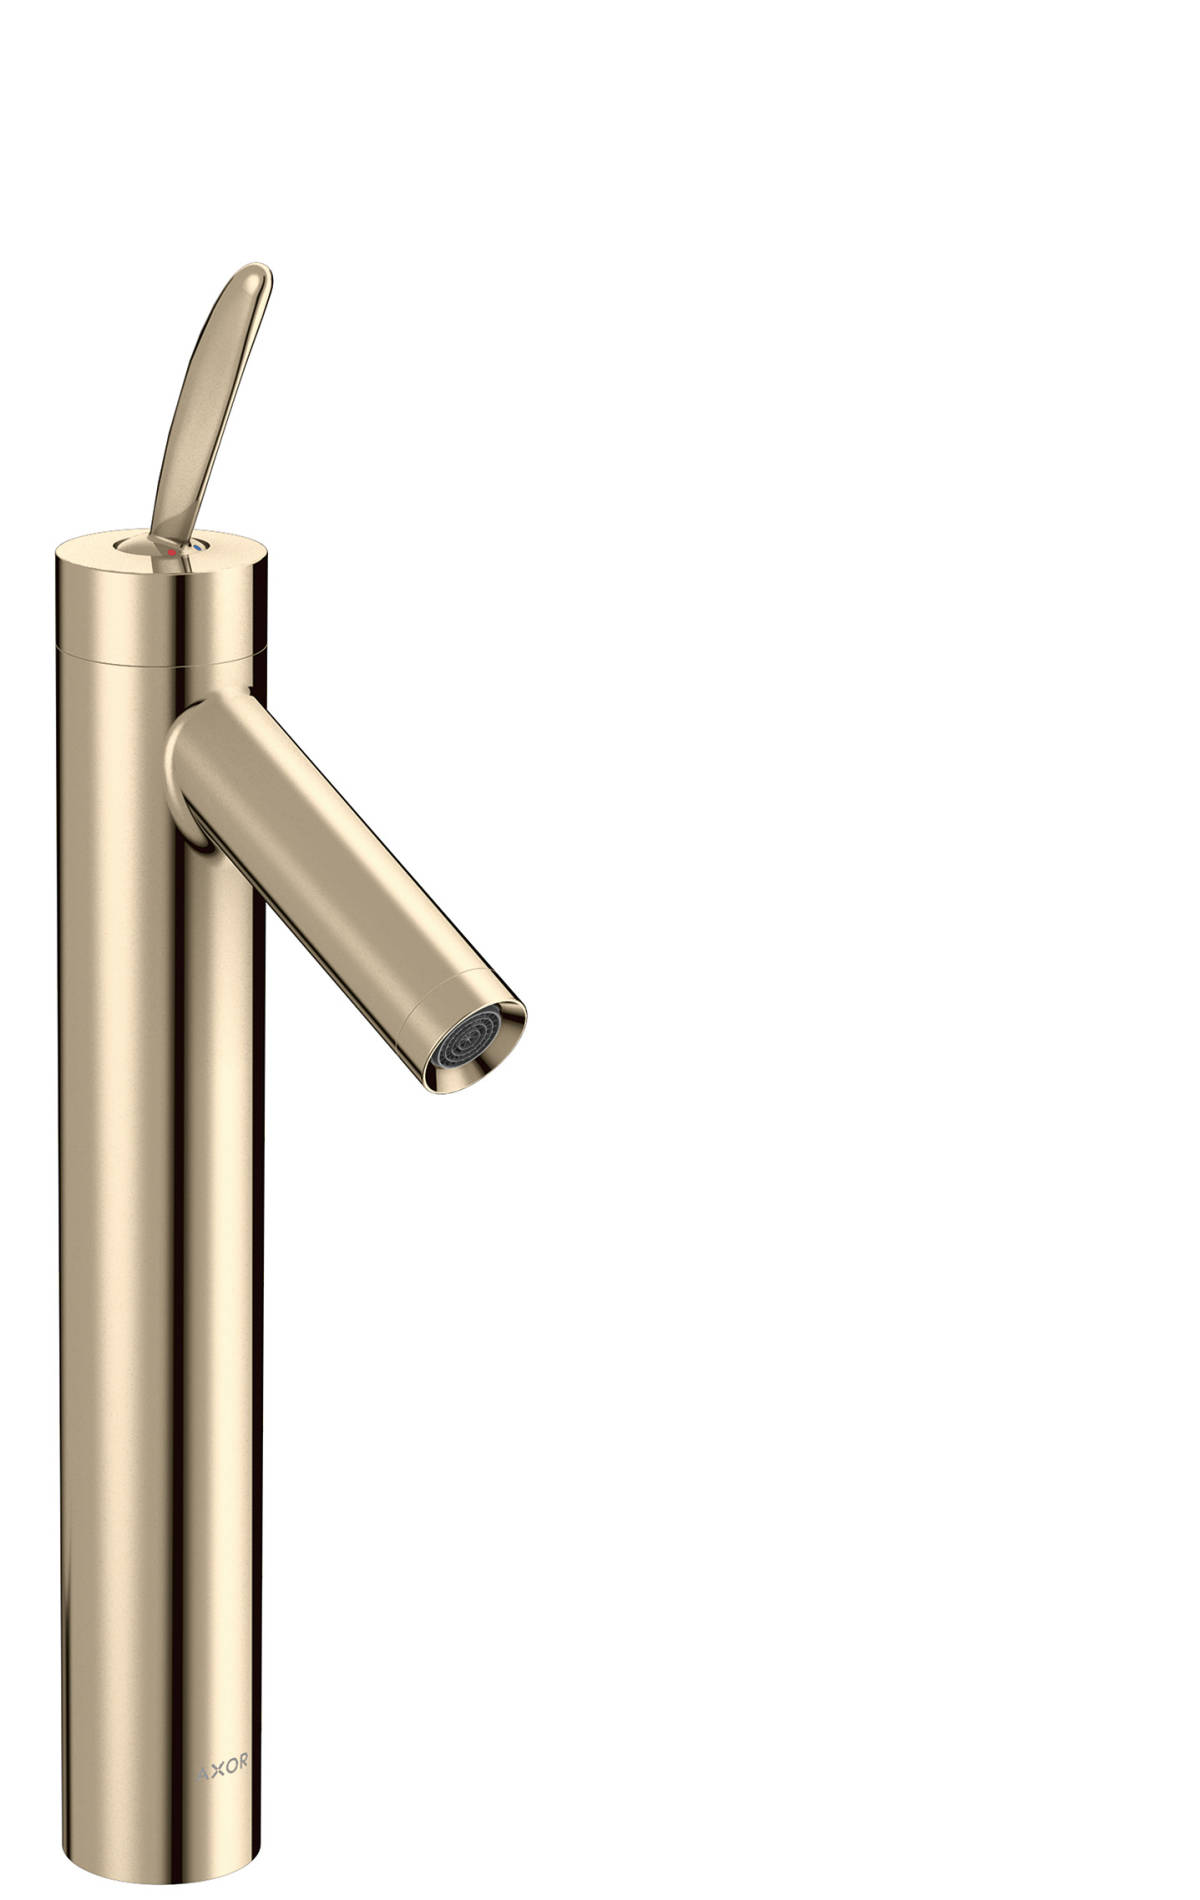 Single lever basin mixer 220 for washbowls with pop-up waste set, Polished Nickel, 10020830